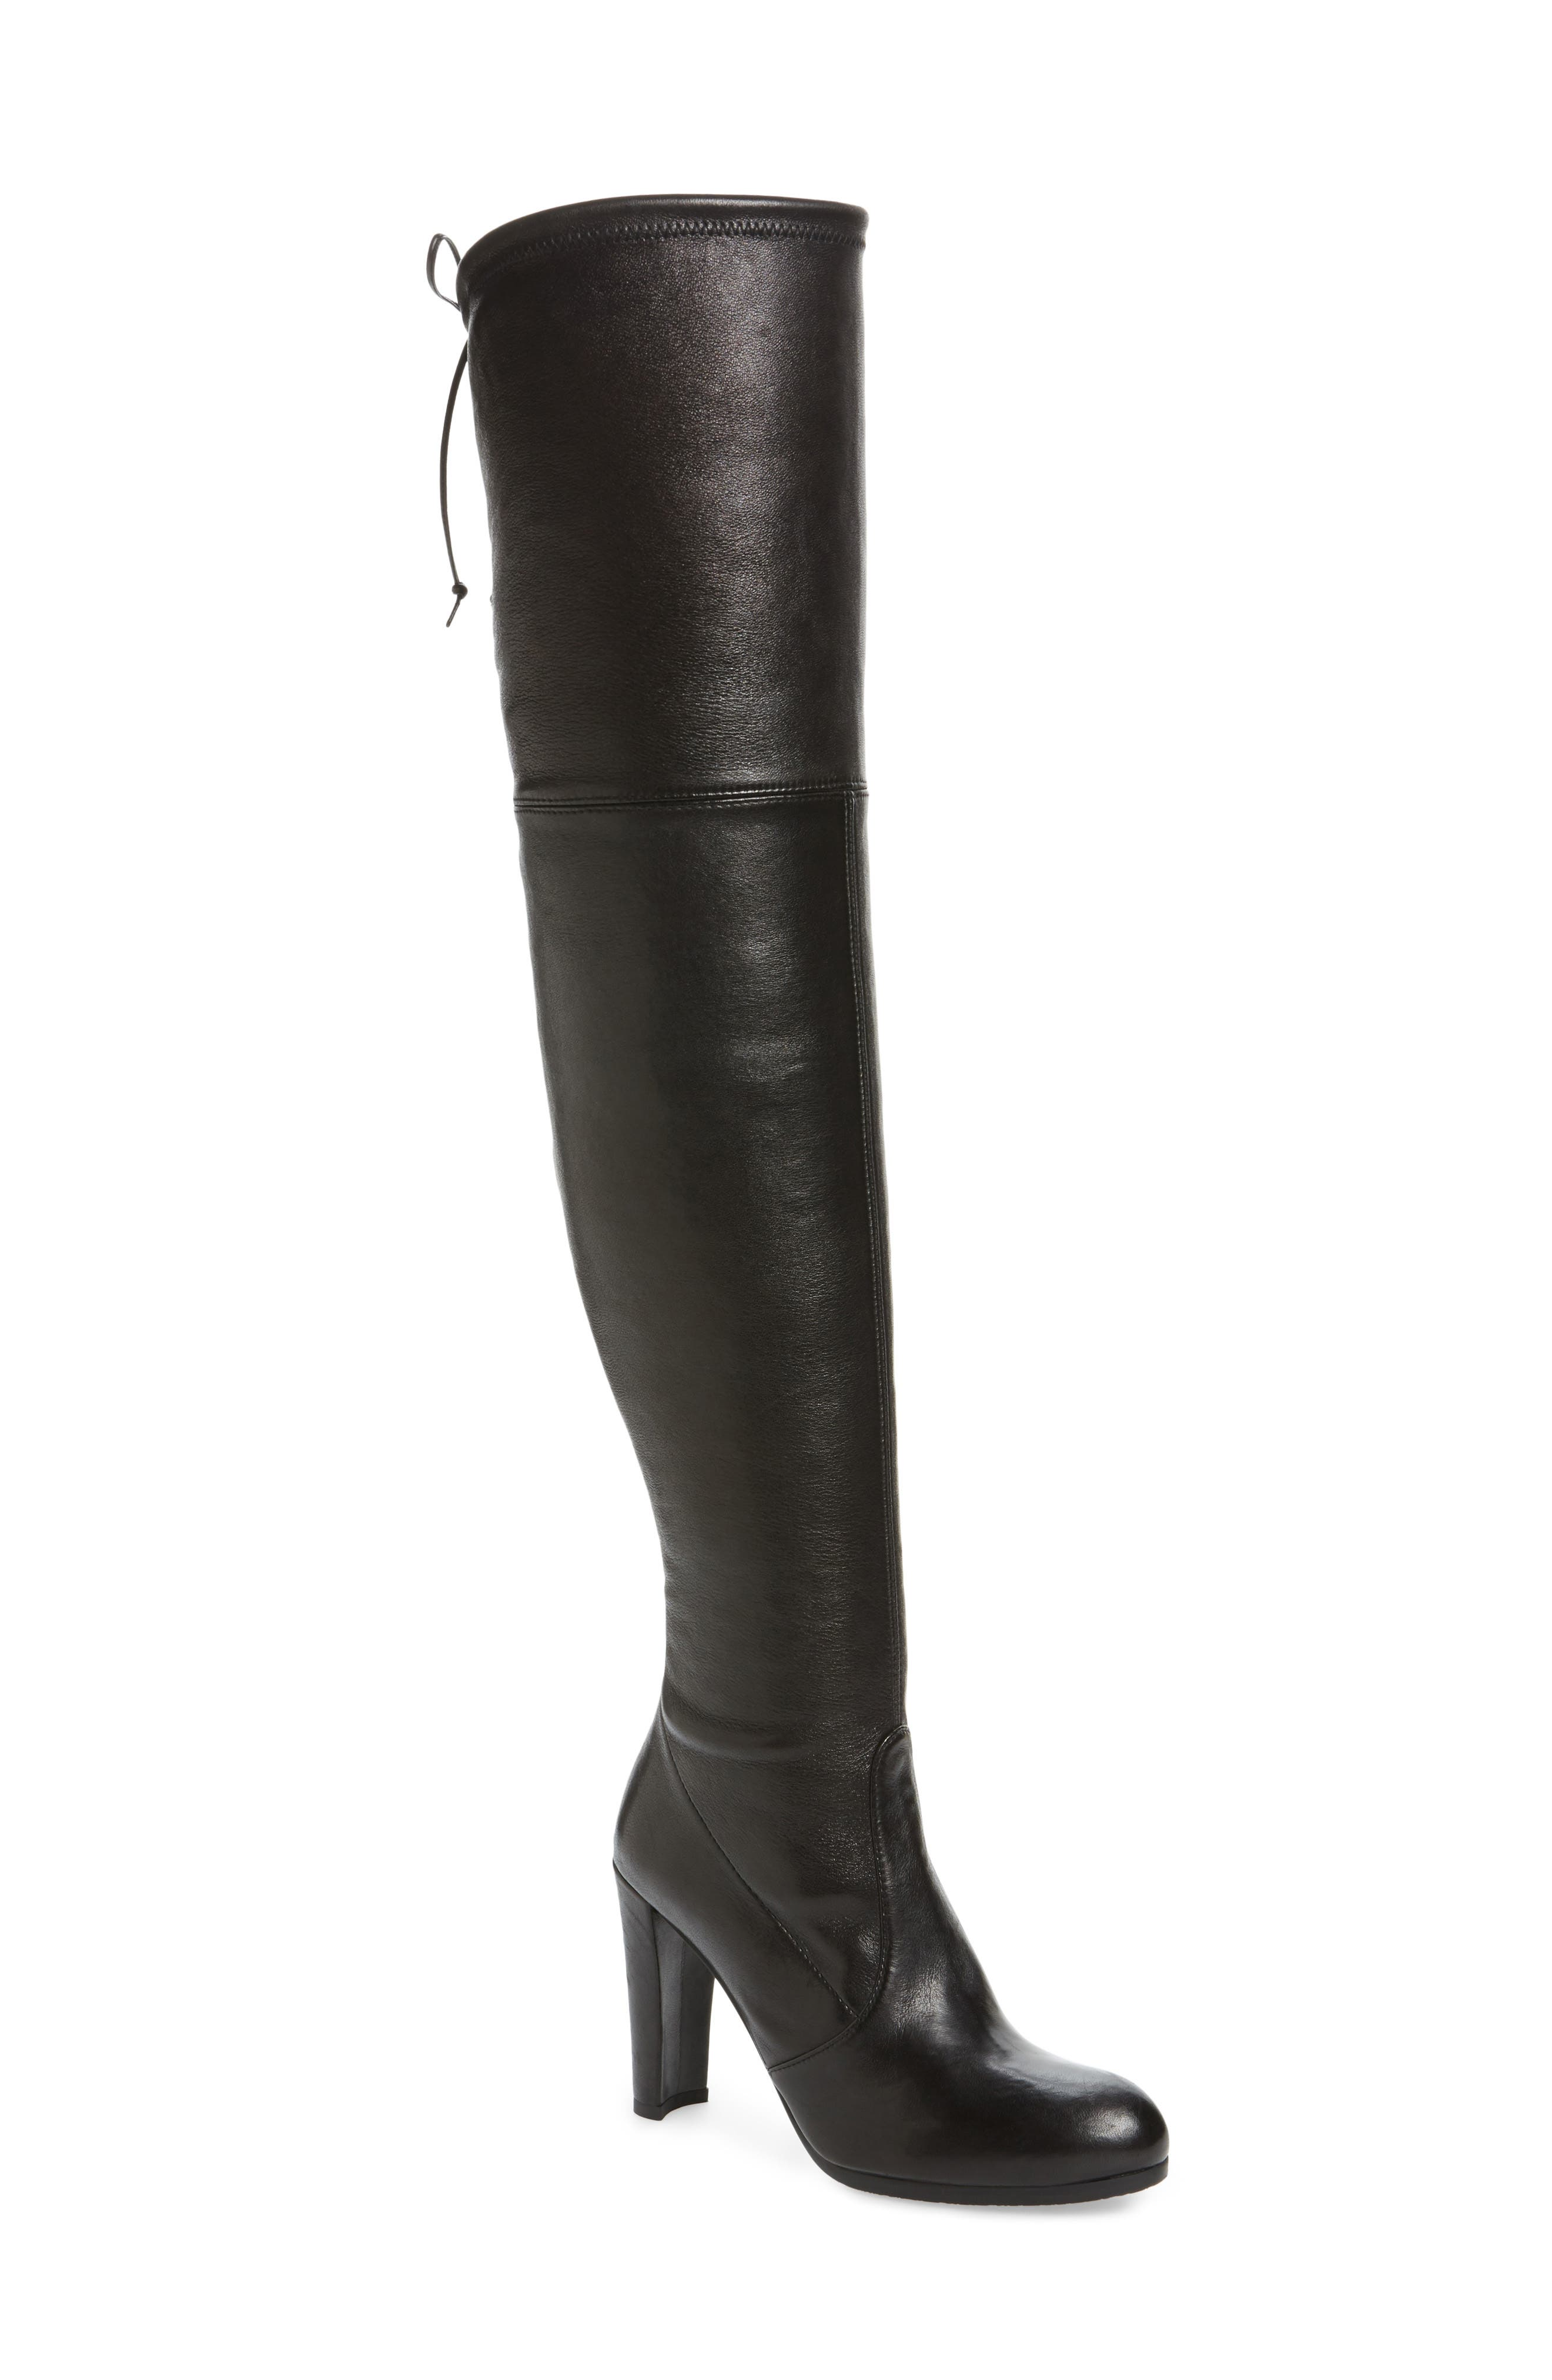 Hiline Over the Knee Boot,                         Main,                         color, Black Nappa